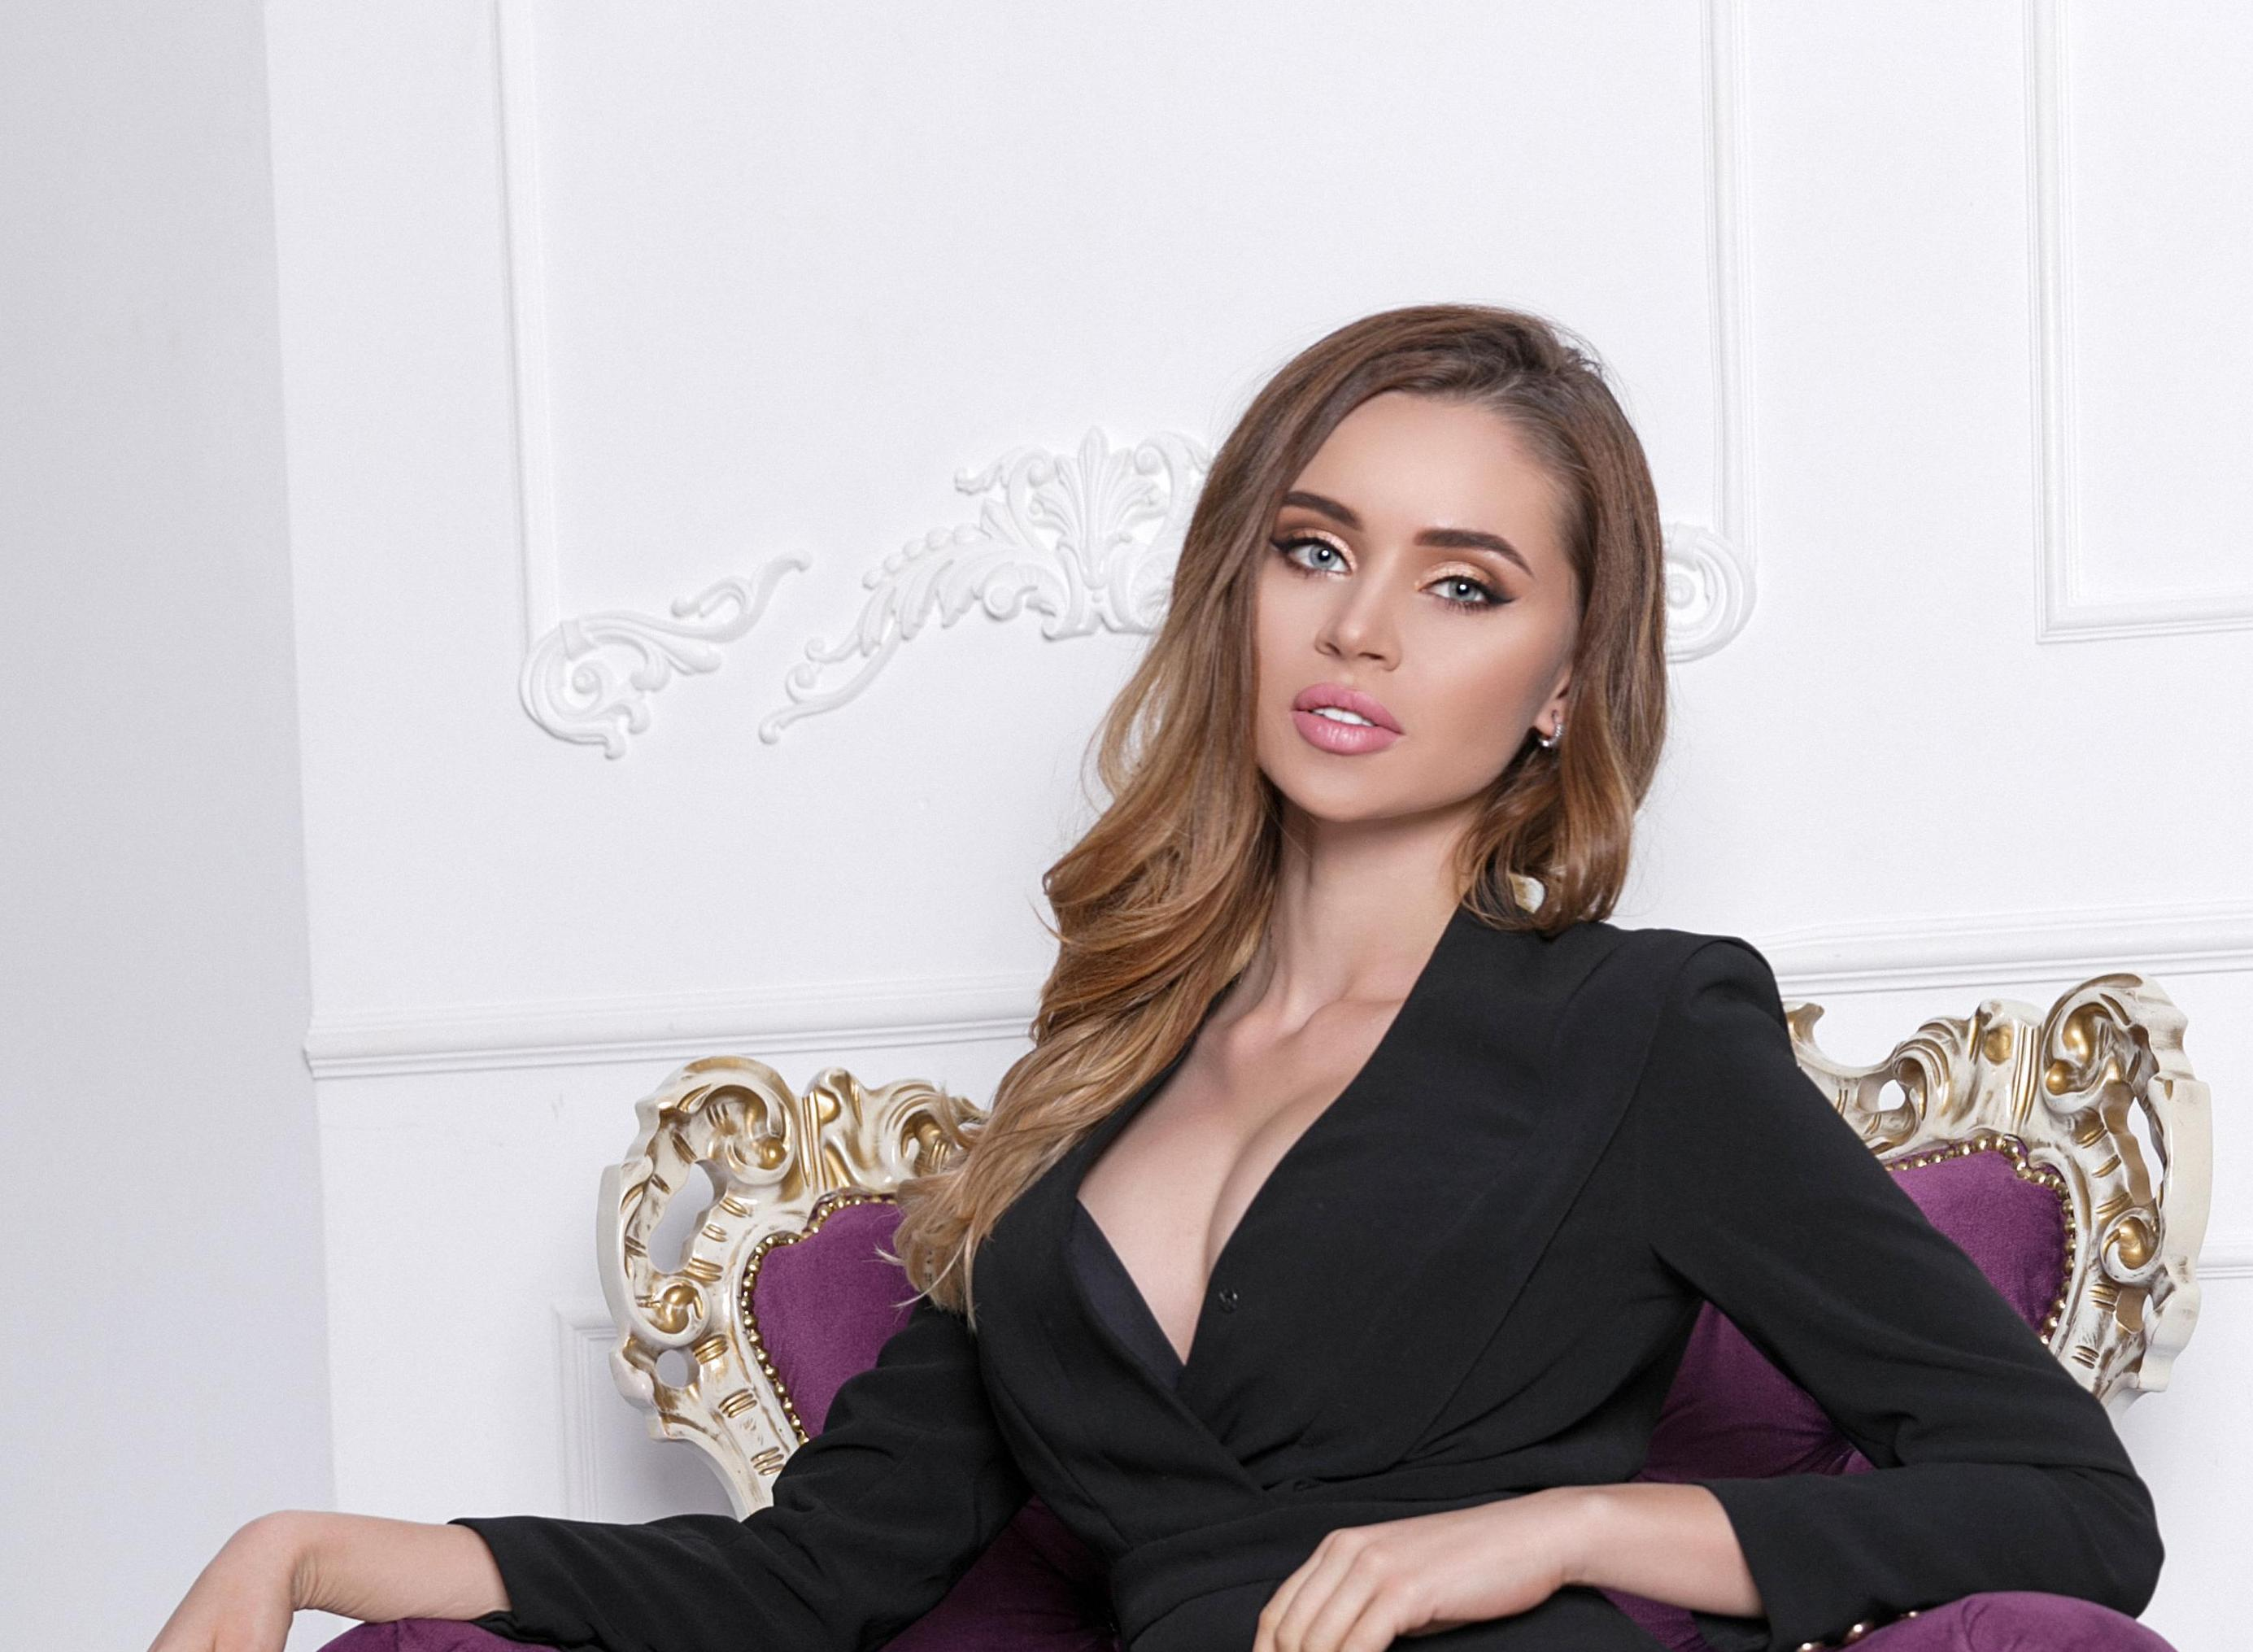 So SEXY in SUITS? These ladies are amazing!